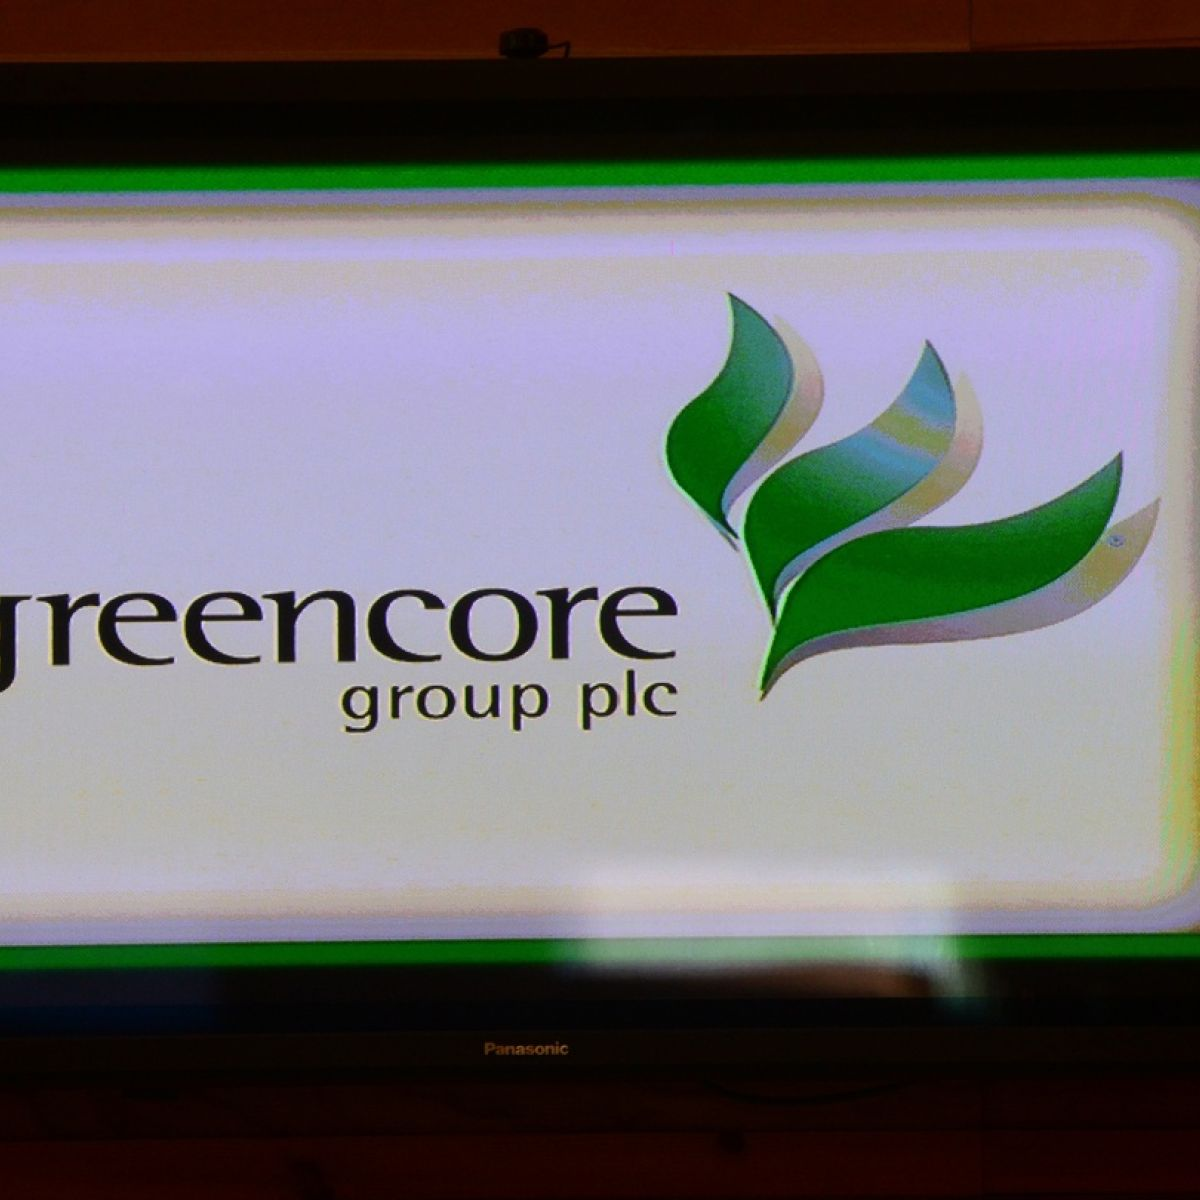 Cantor Fitzgerald Downgrades Greencore Outlook